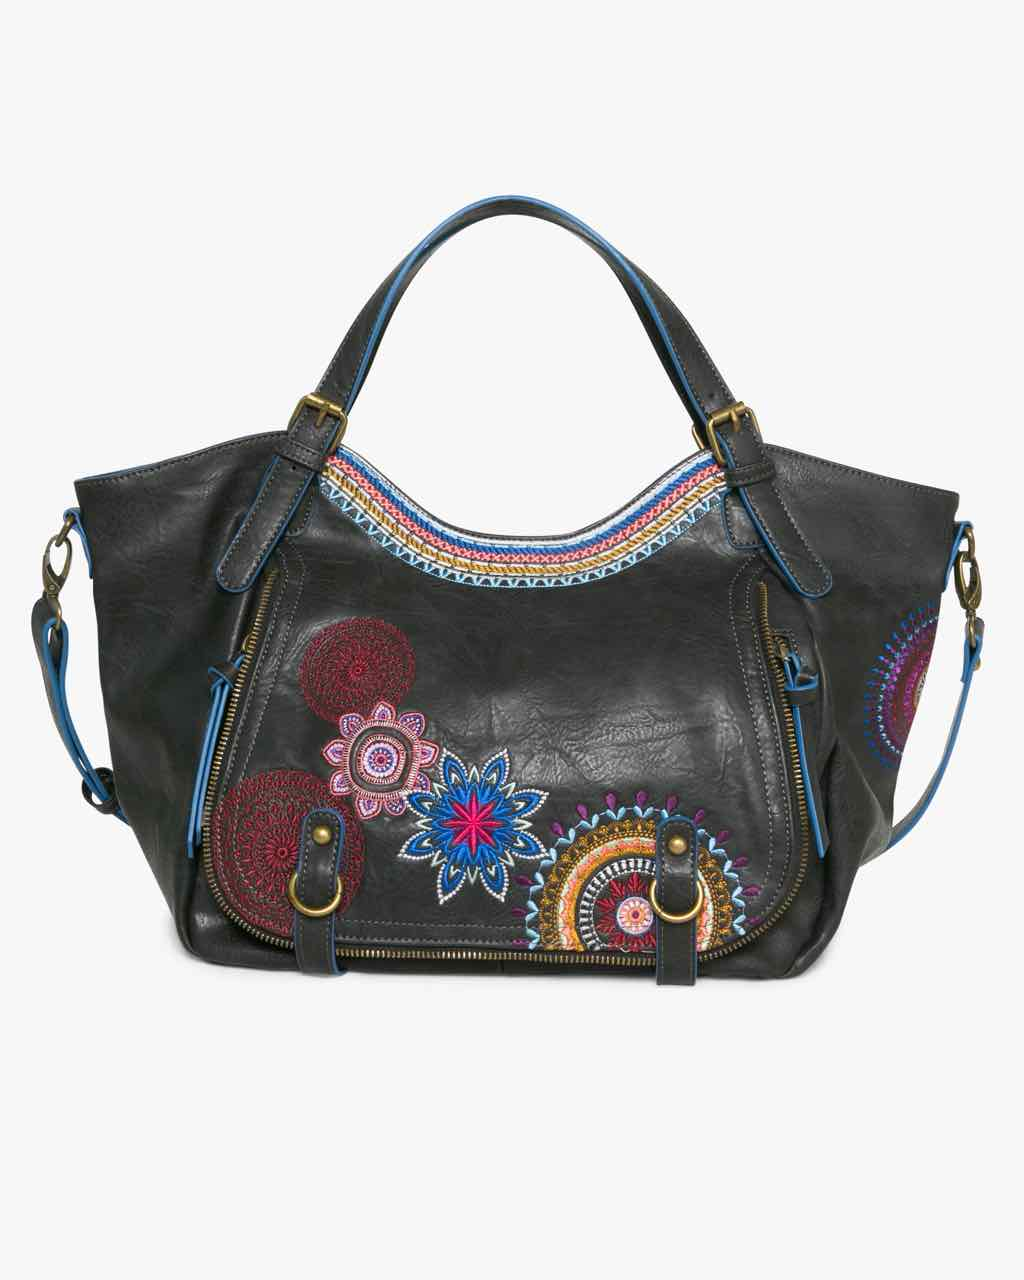 Buy Desigual Bags, Purses and Wallets in Canada Online